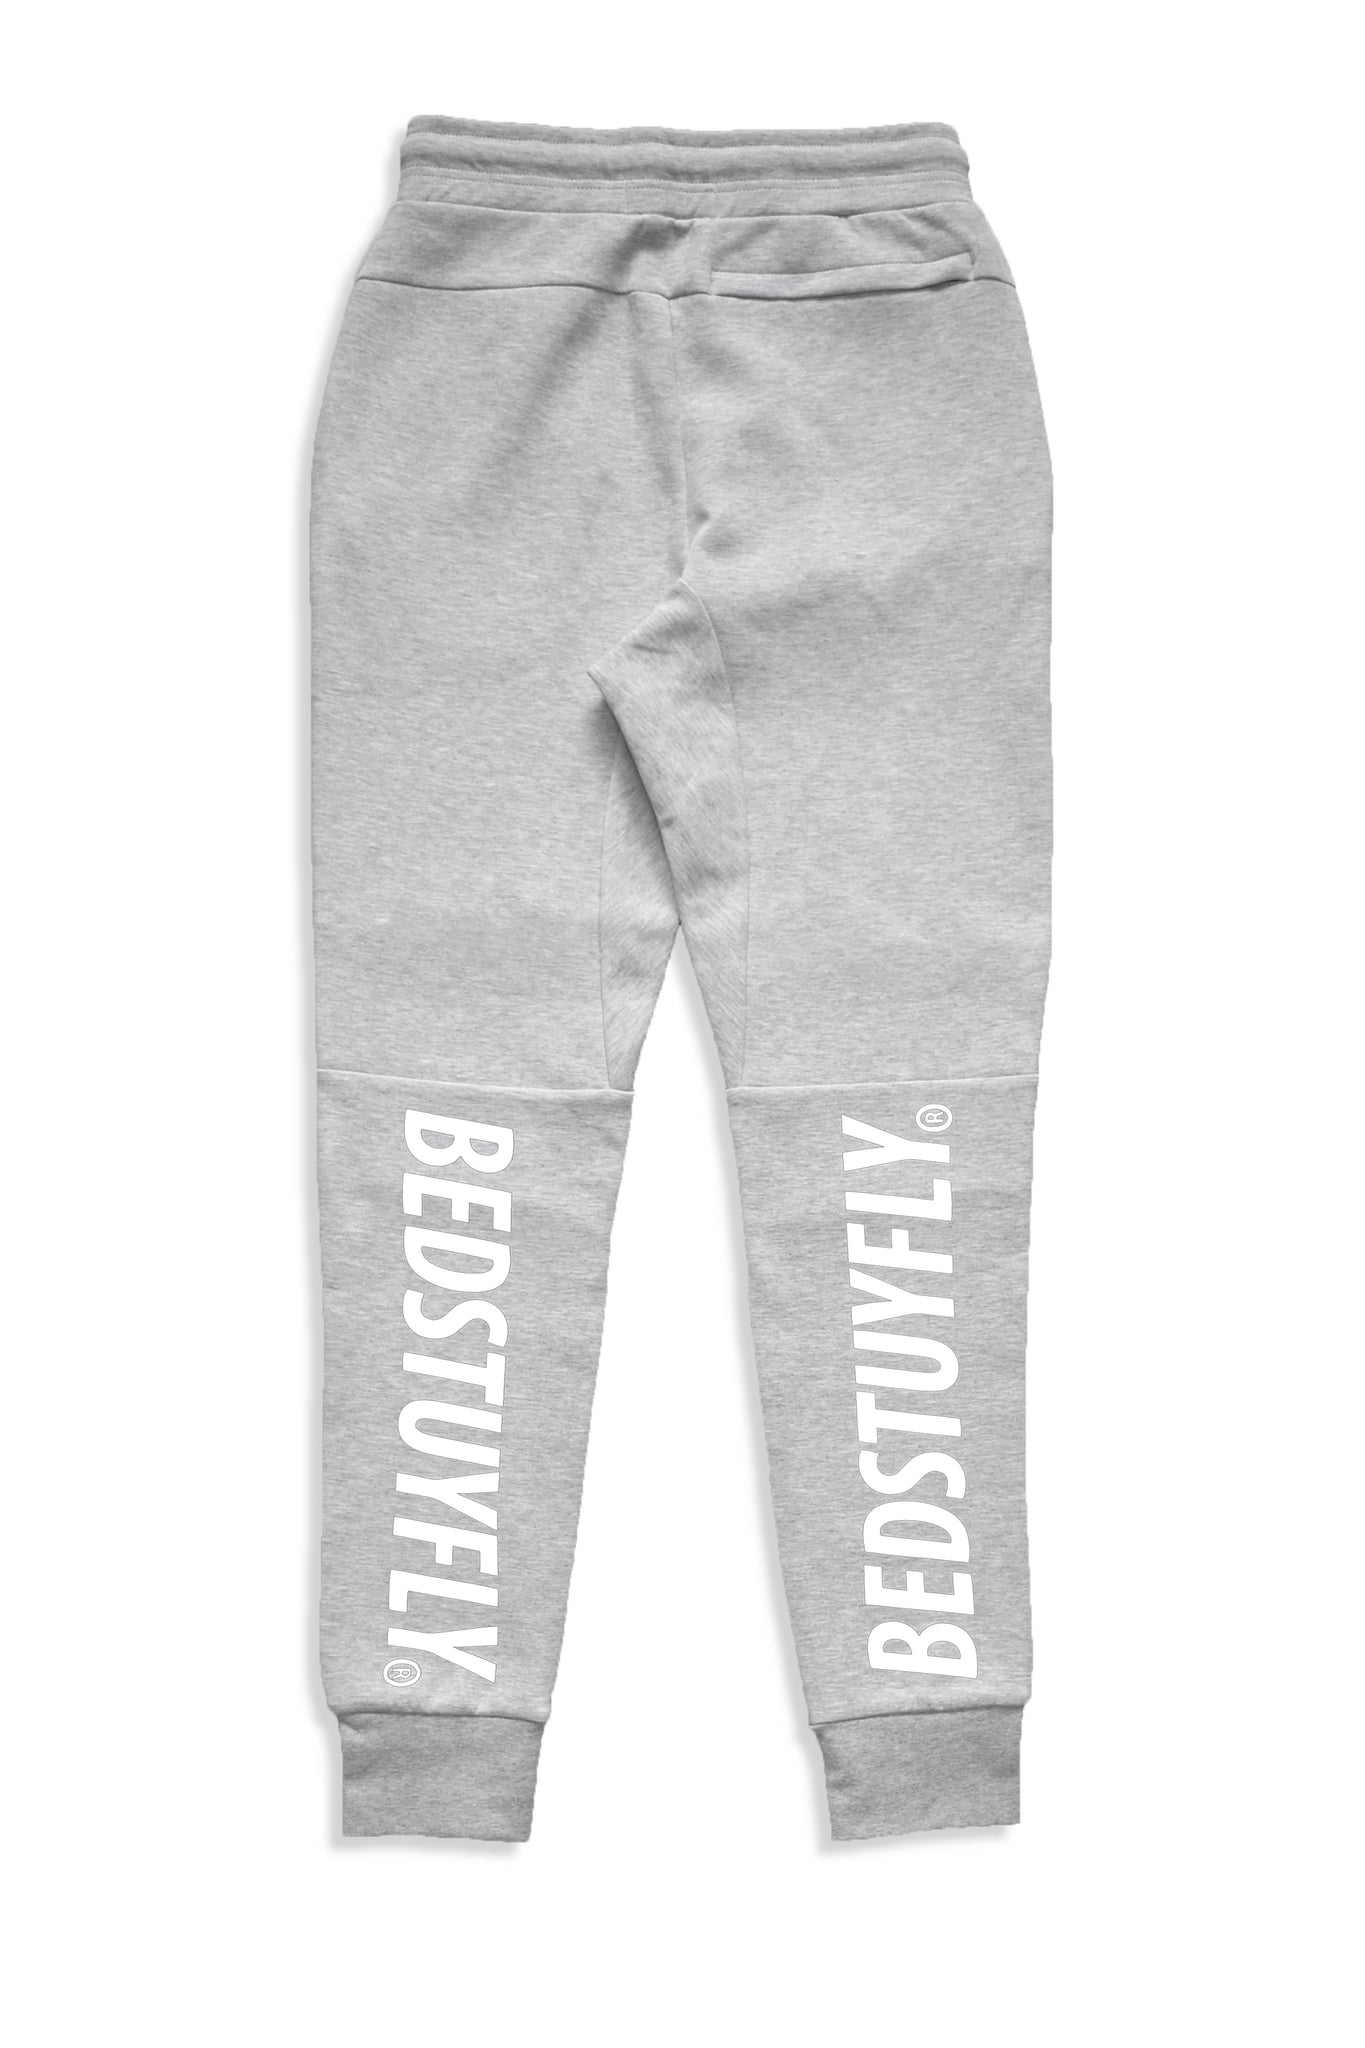 2.0 Performance Tech Fleece Sweatpants (Gray/White)